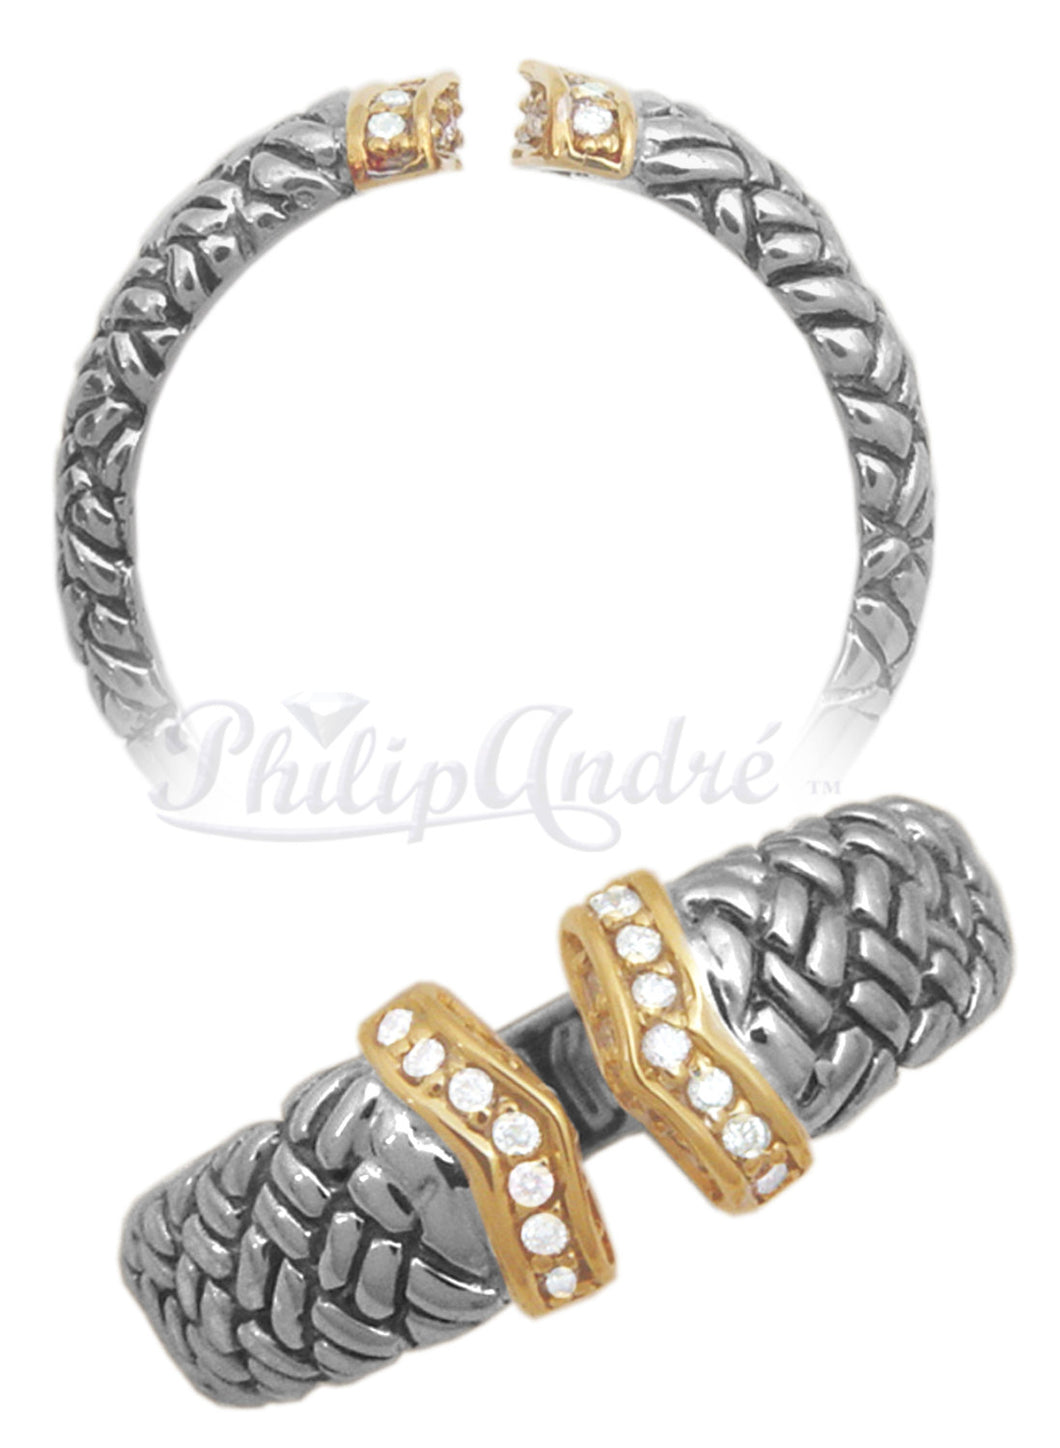 Philip Andre 18K Gold & 925 Sterling Silver Pave-set Diamond Ring